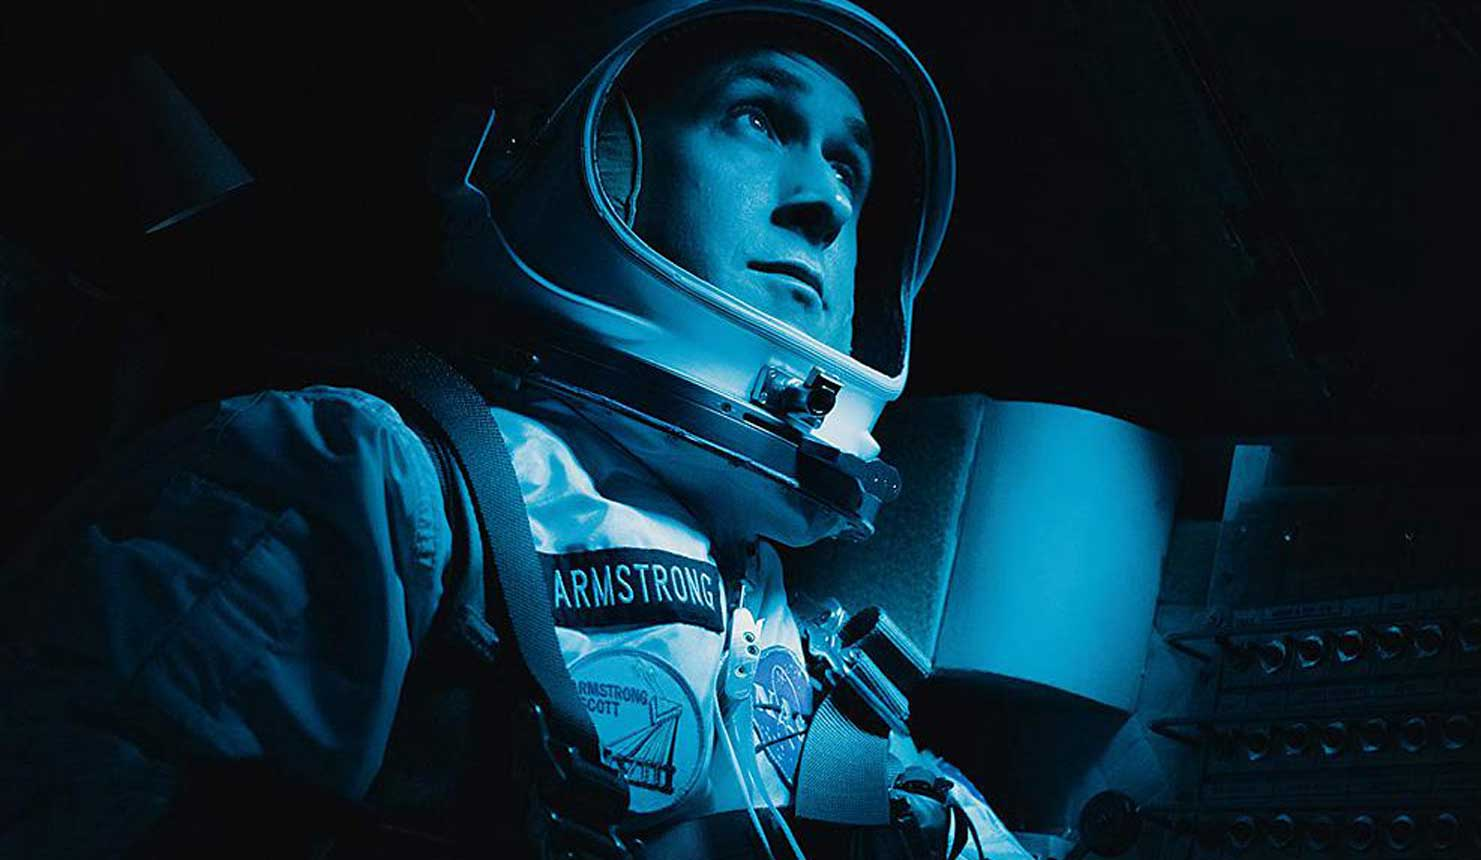 Witness The Most Dangerous Mission In History In The New 'First Man' Trailer